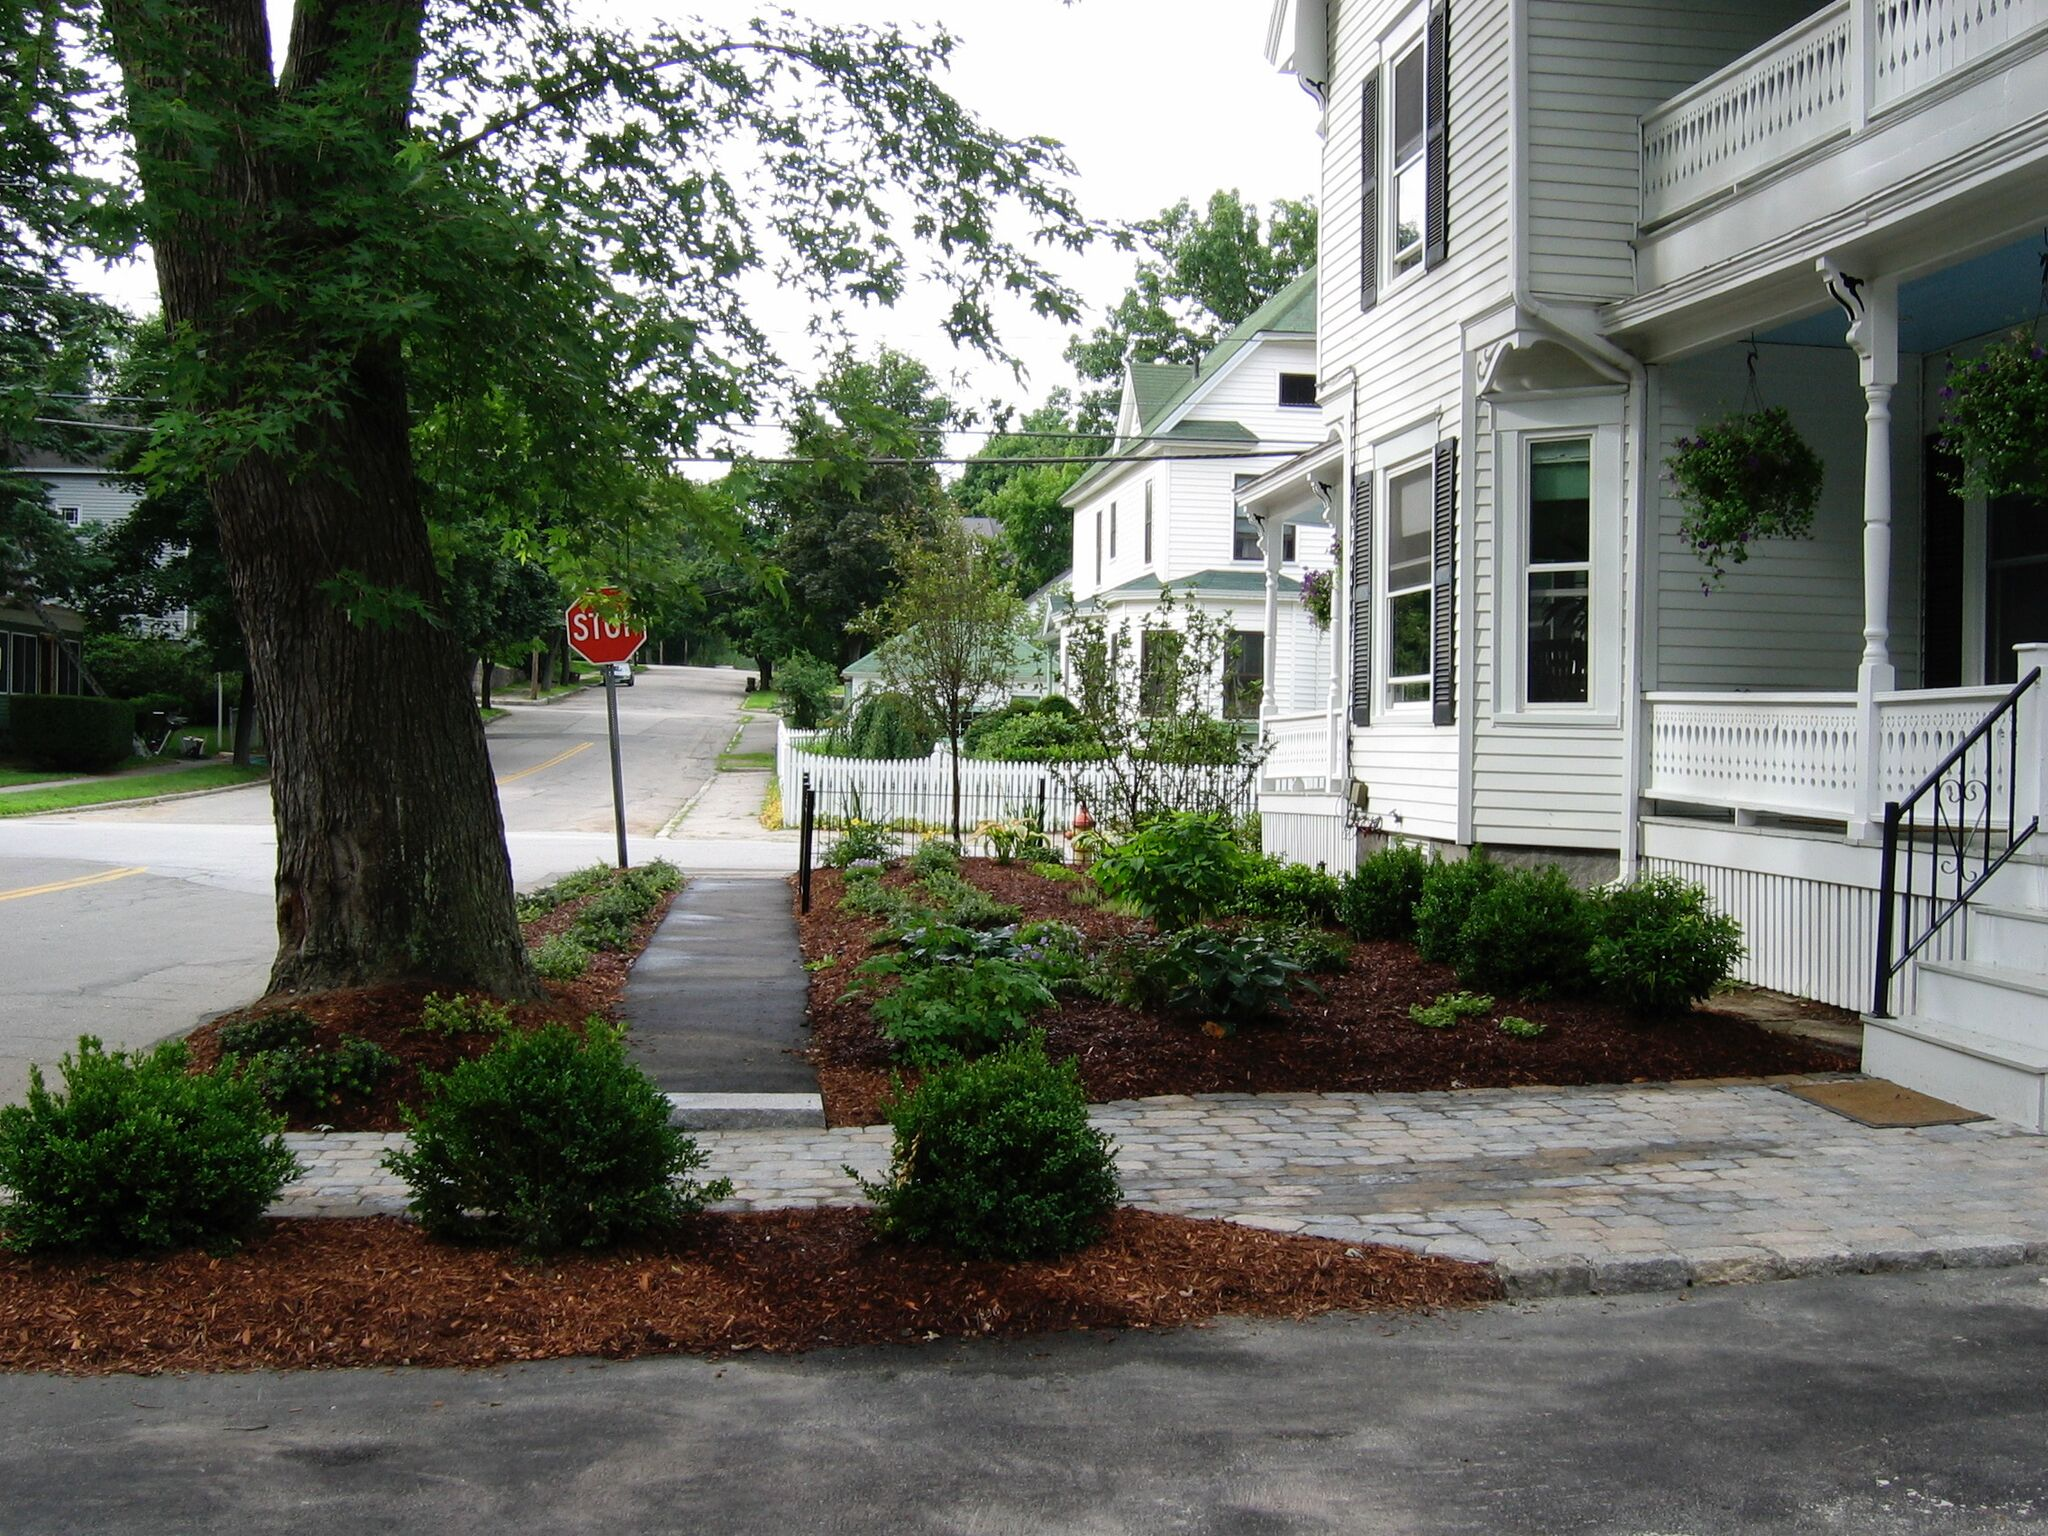 Urban Plant Bed and Cobblestone Walkway